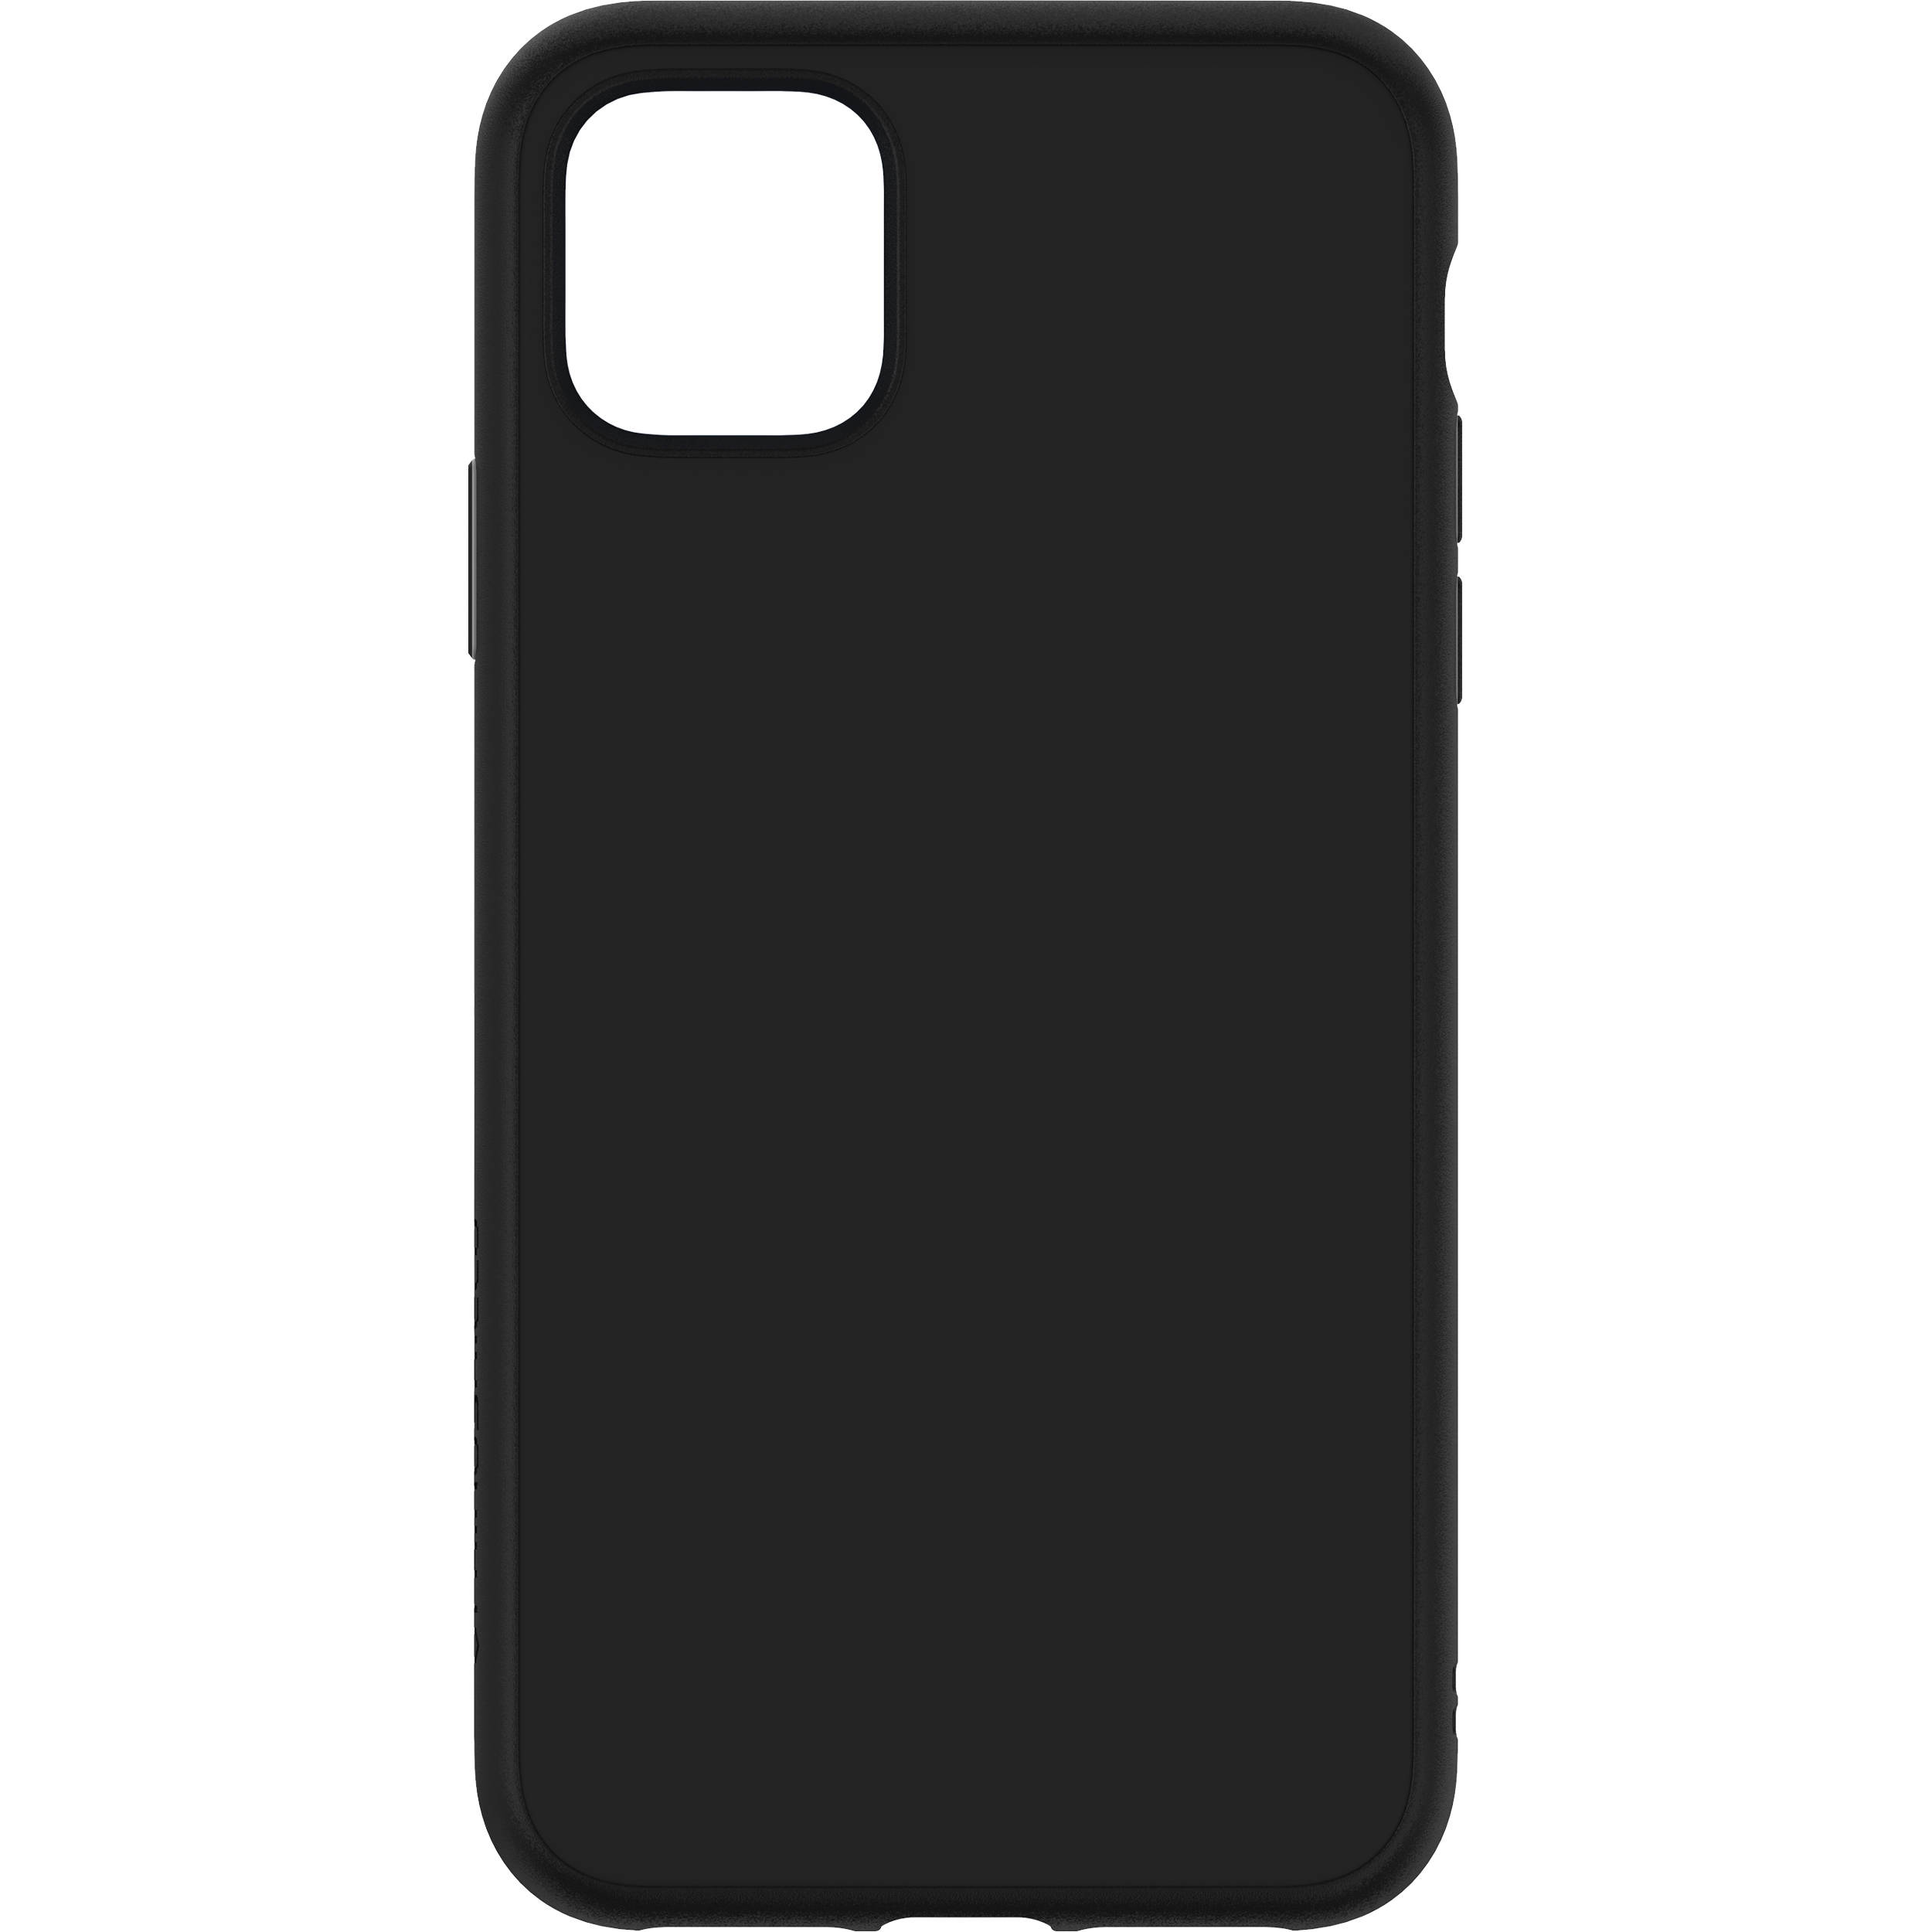 Rhinoshield Solidsuit Case For Iphone 11 Pro Max Ssa0114952 B H